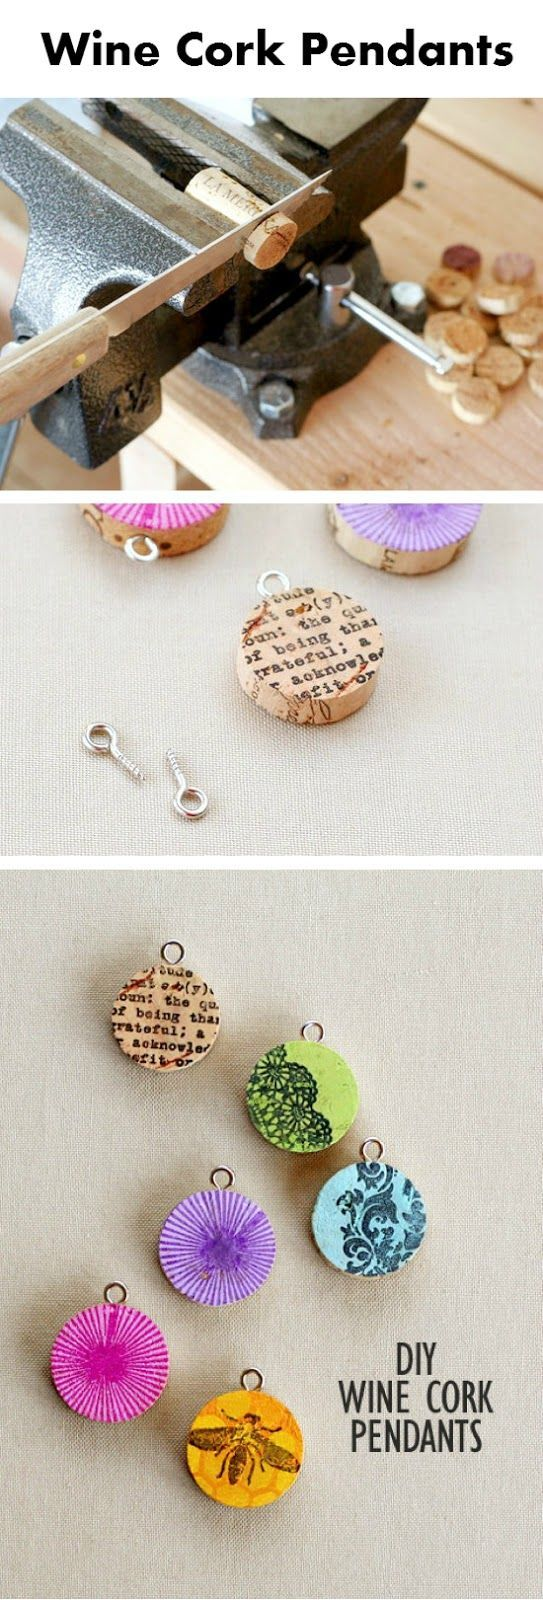 Cheap and Easy!!!!! Hmmm, wine cork pendants - Lord knows I have a few corks lying around.